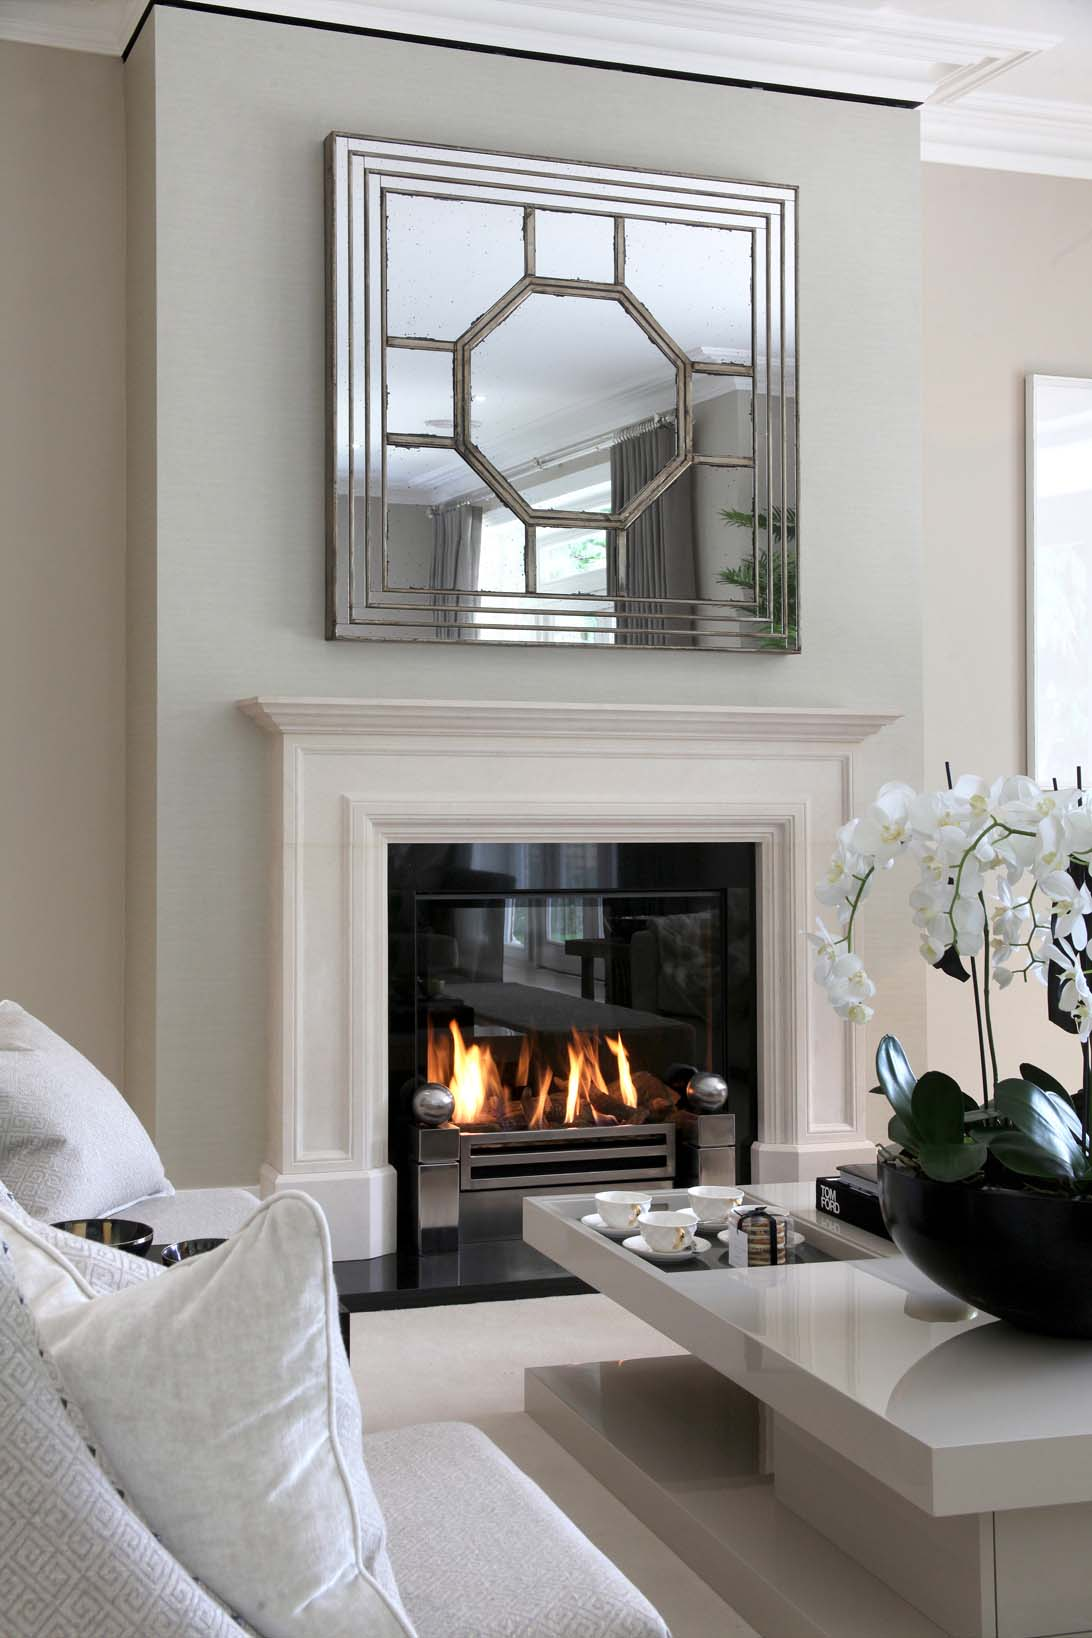 Marble Hill Fireplaces Ltd